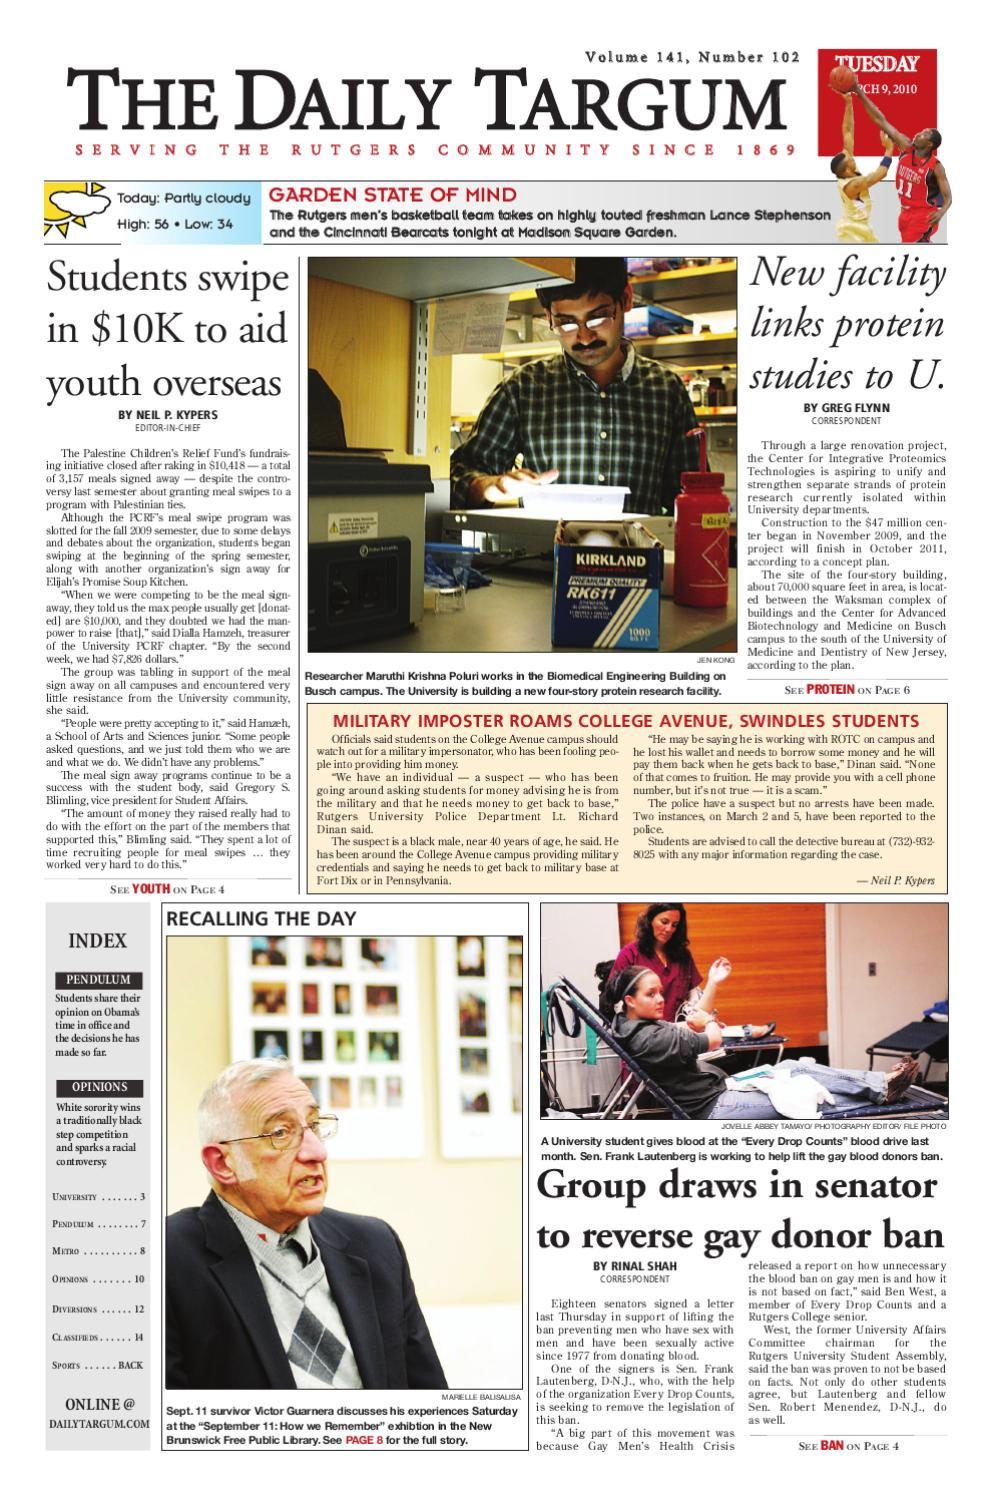 5512bc81a24 The Daily Targum 2010-03-09 by The Daily Targum - issuu